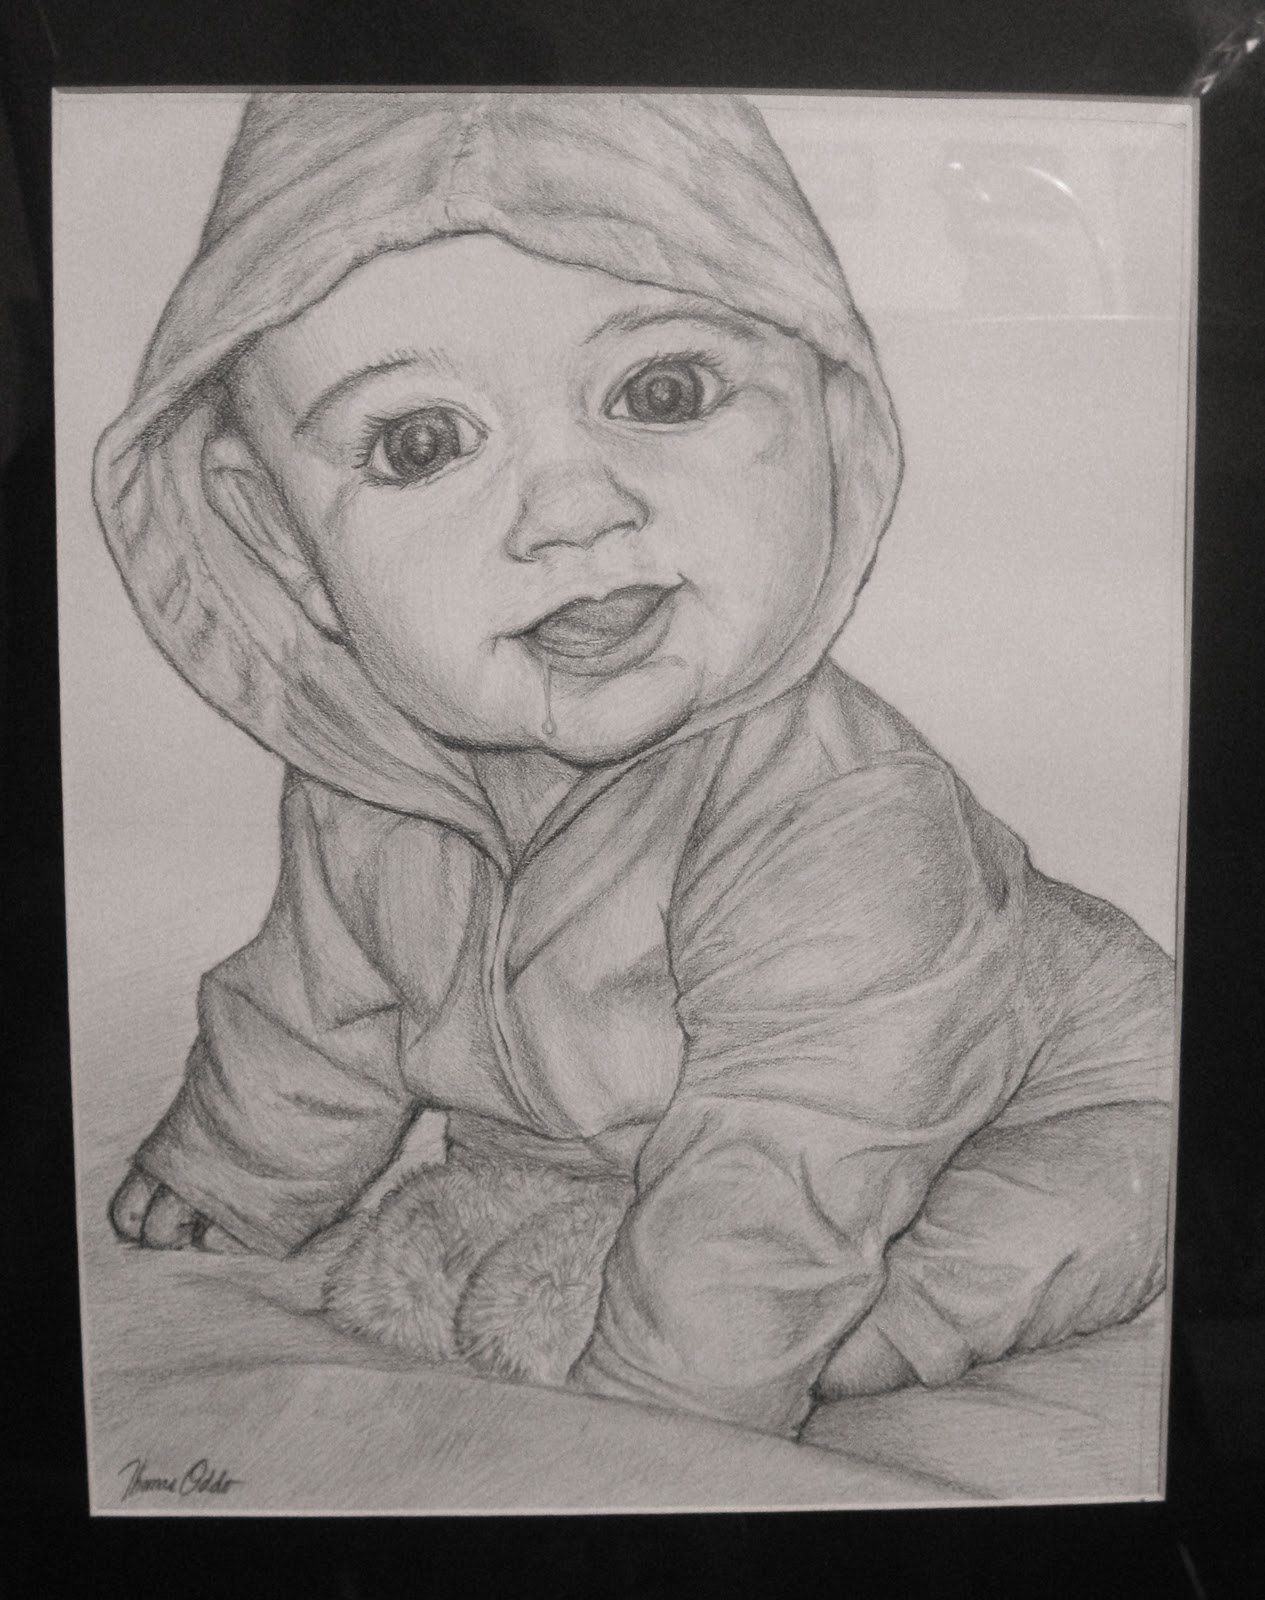 Pencil Drawings Of Babies Free High Resolution P...